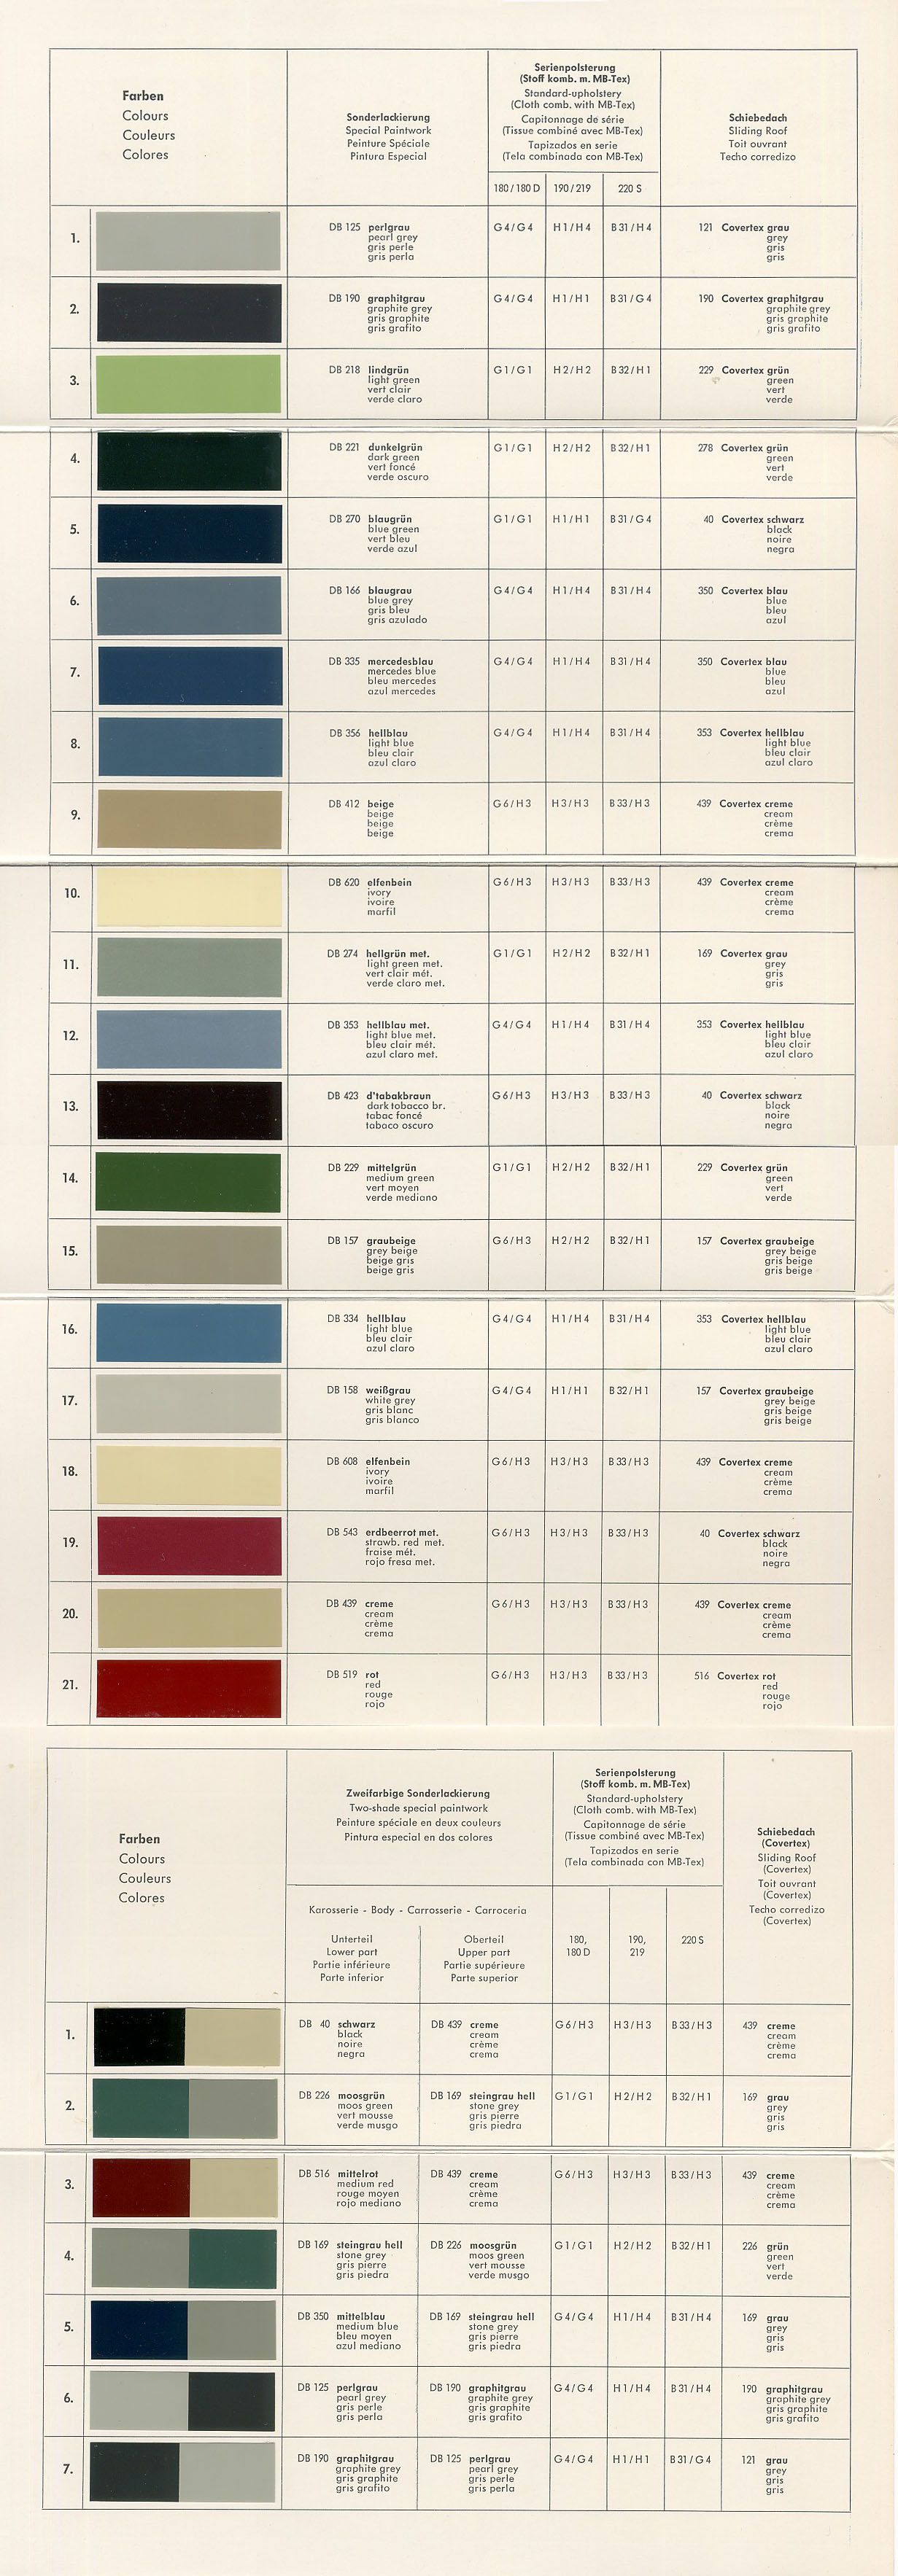 190sl mb ponton paint codes mercedes 190sl db 158 for Mercedes benz color codes